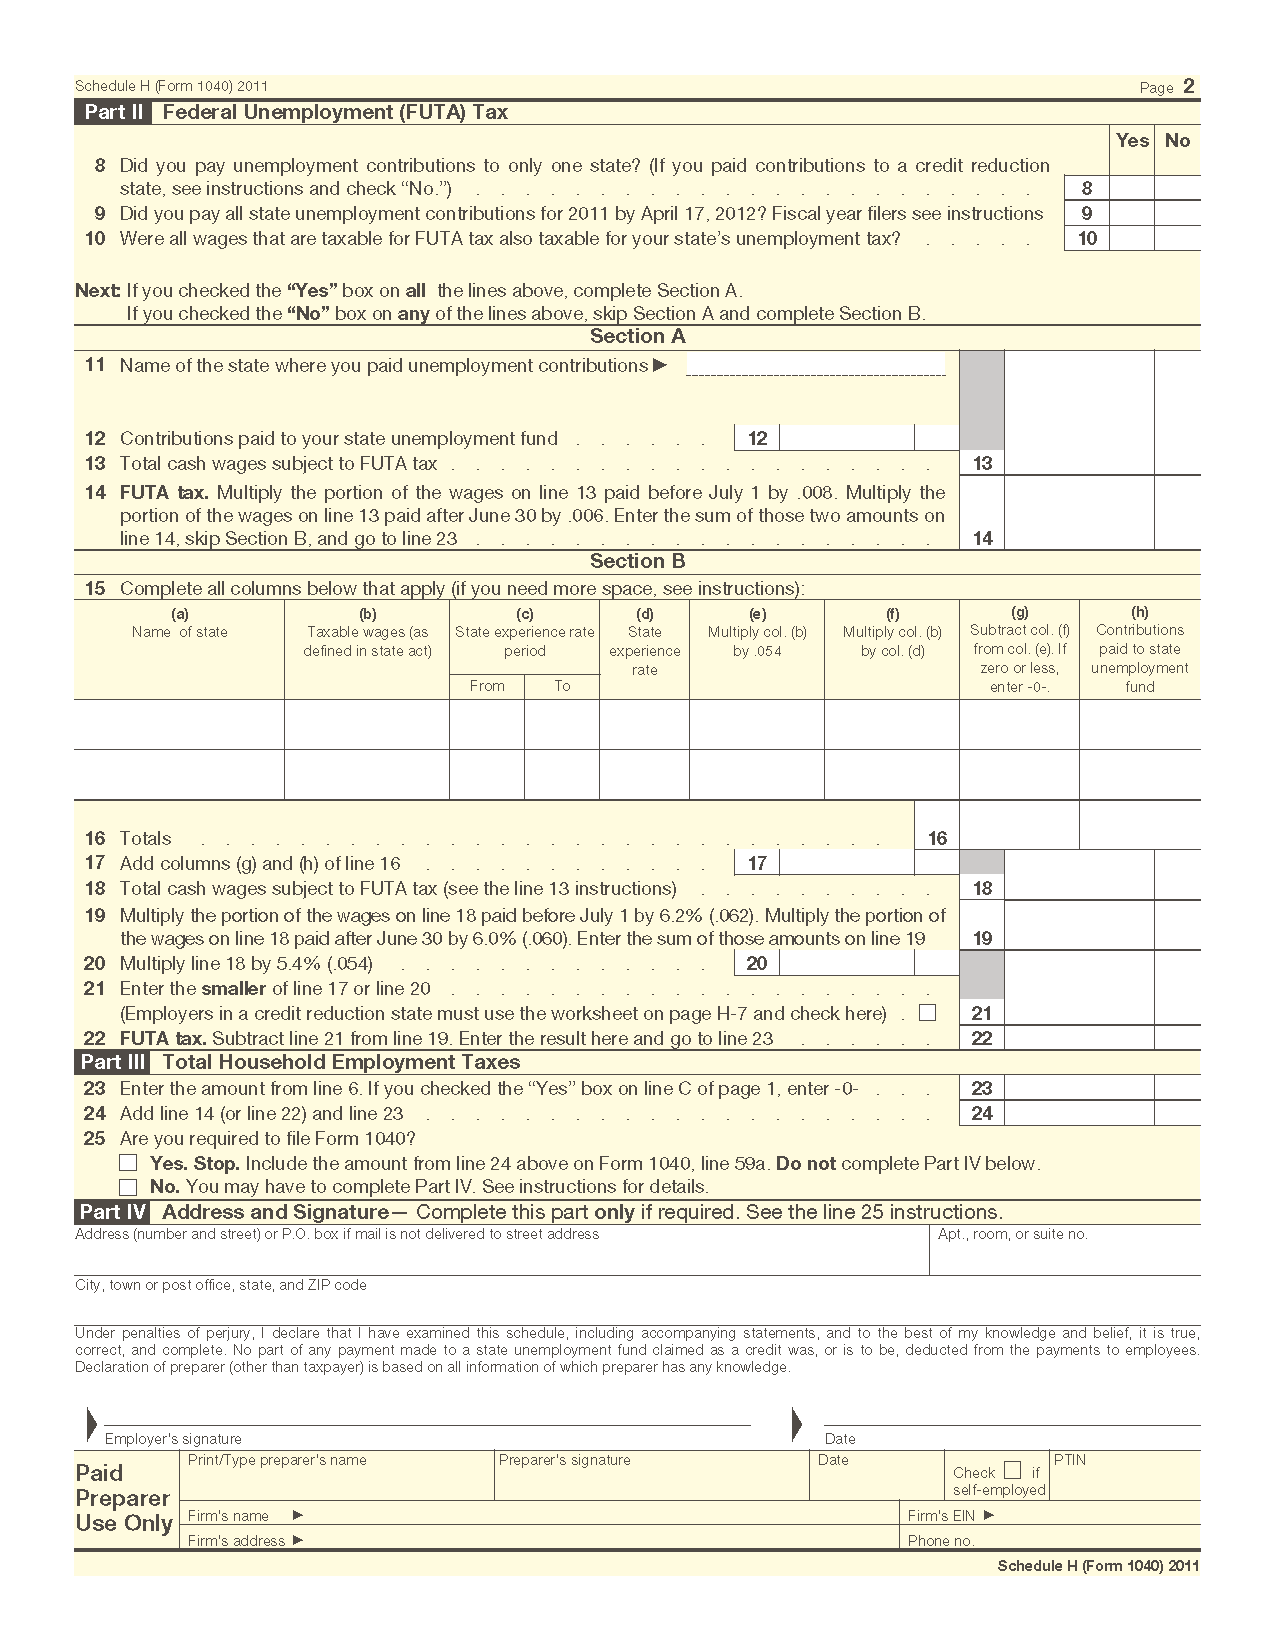 Download Form 1040 (Schedule H)